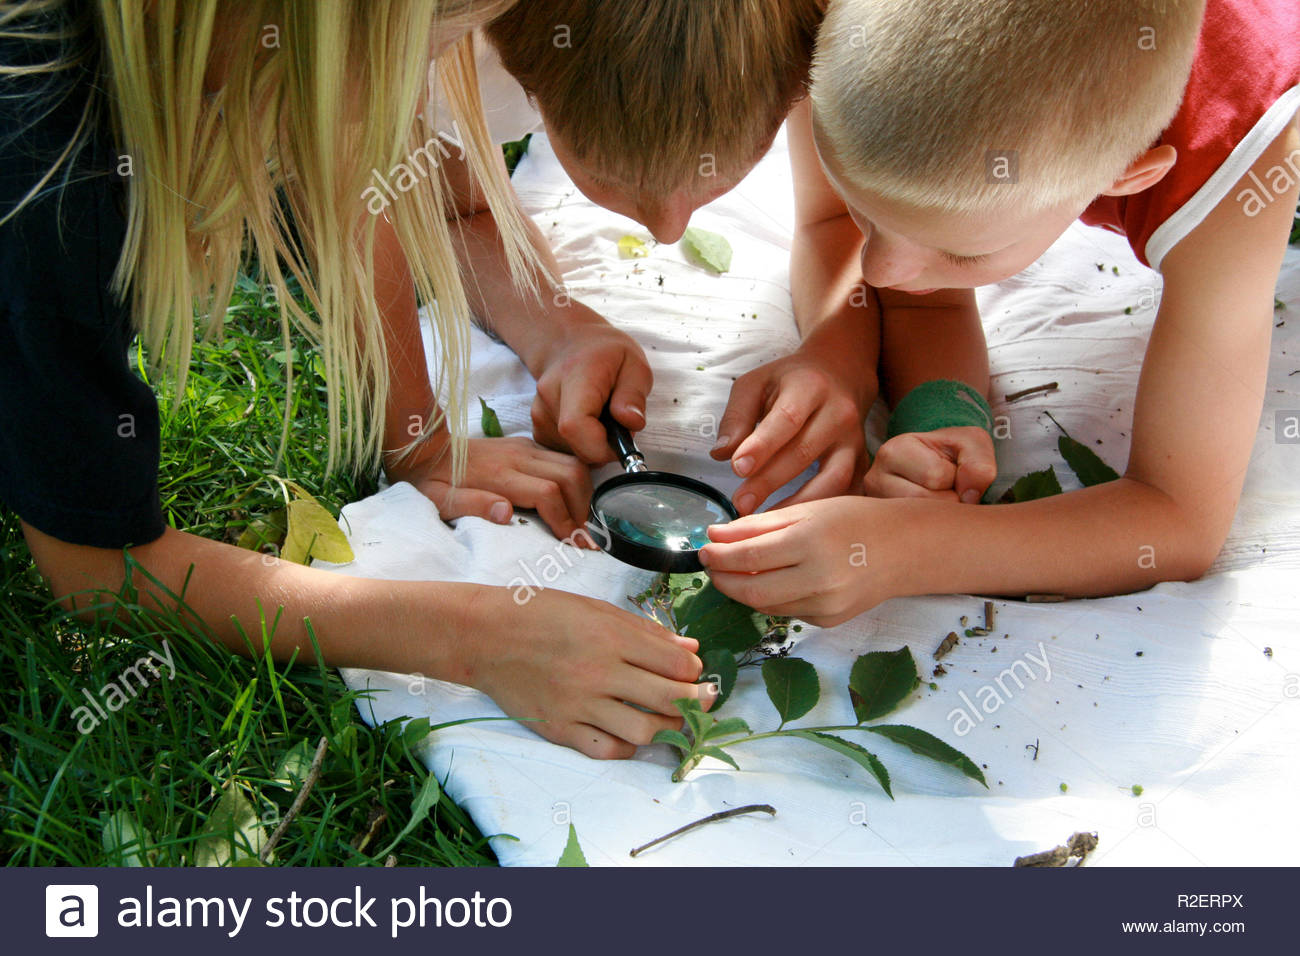 Children's views leaves with a magnifying glass Stock Photo